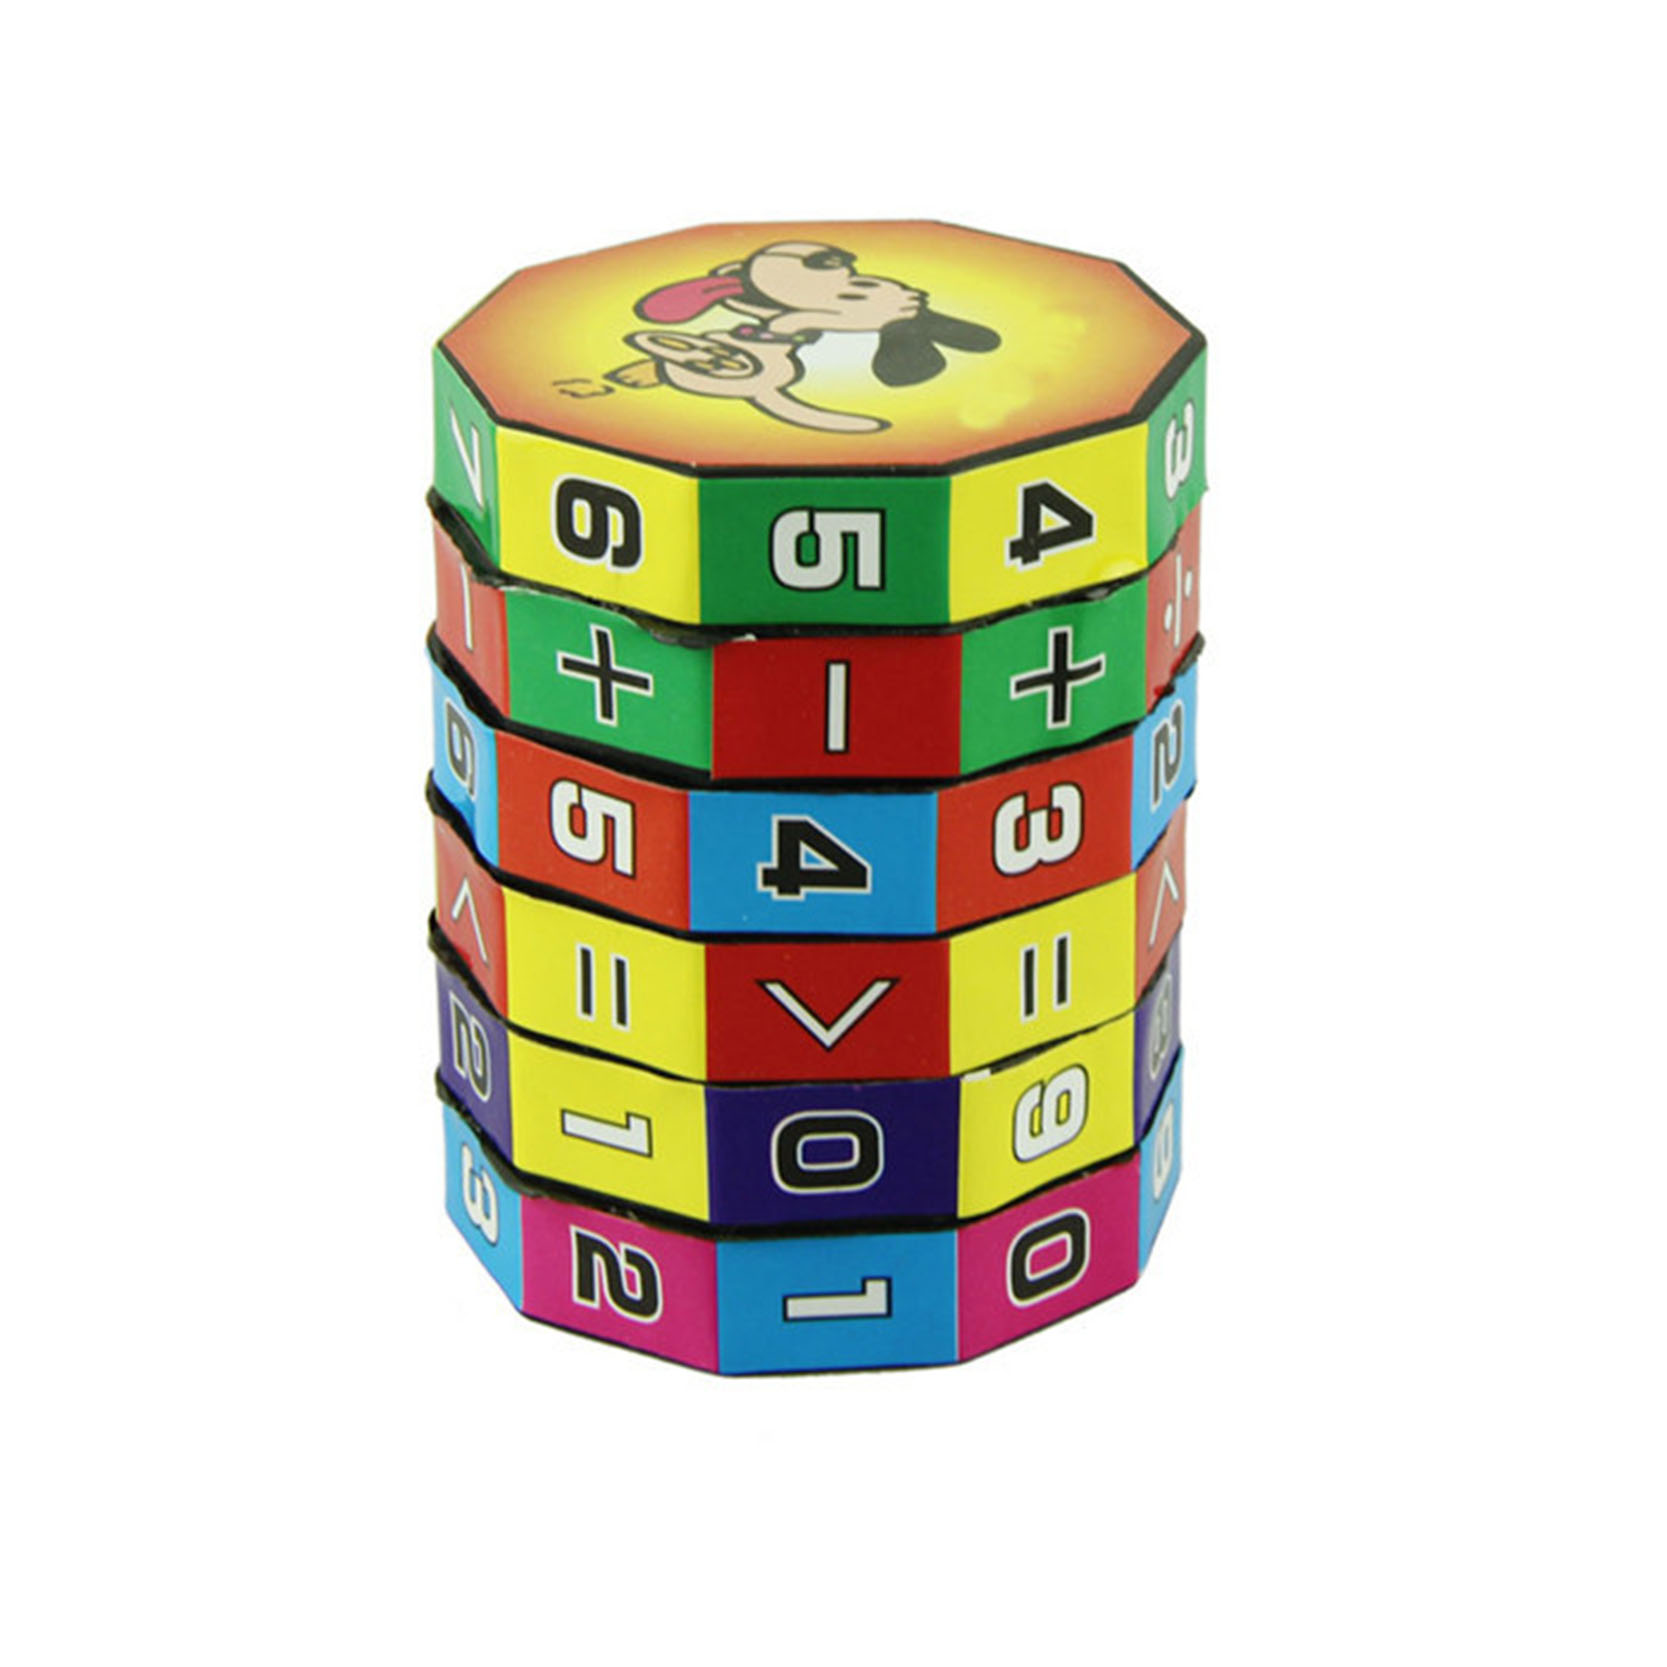 Newest Design Digital Cube Children Educational Learning ...